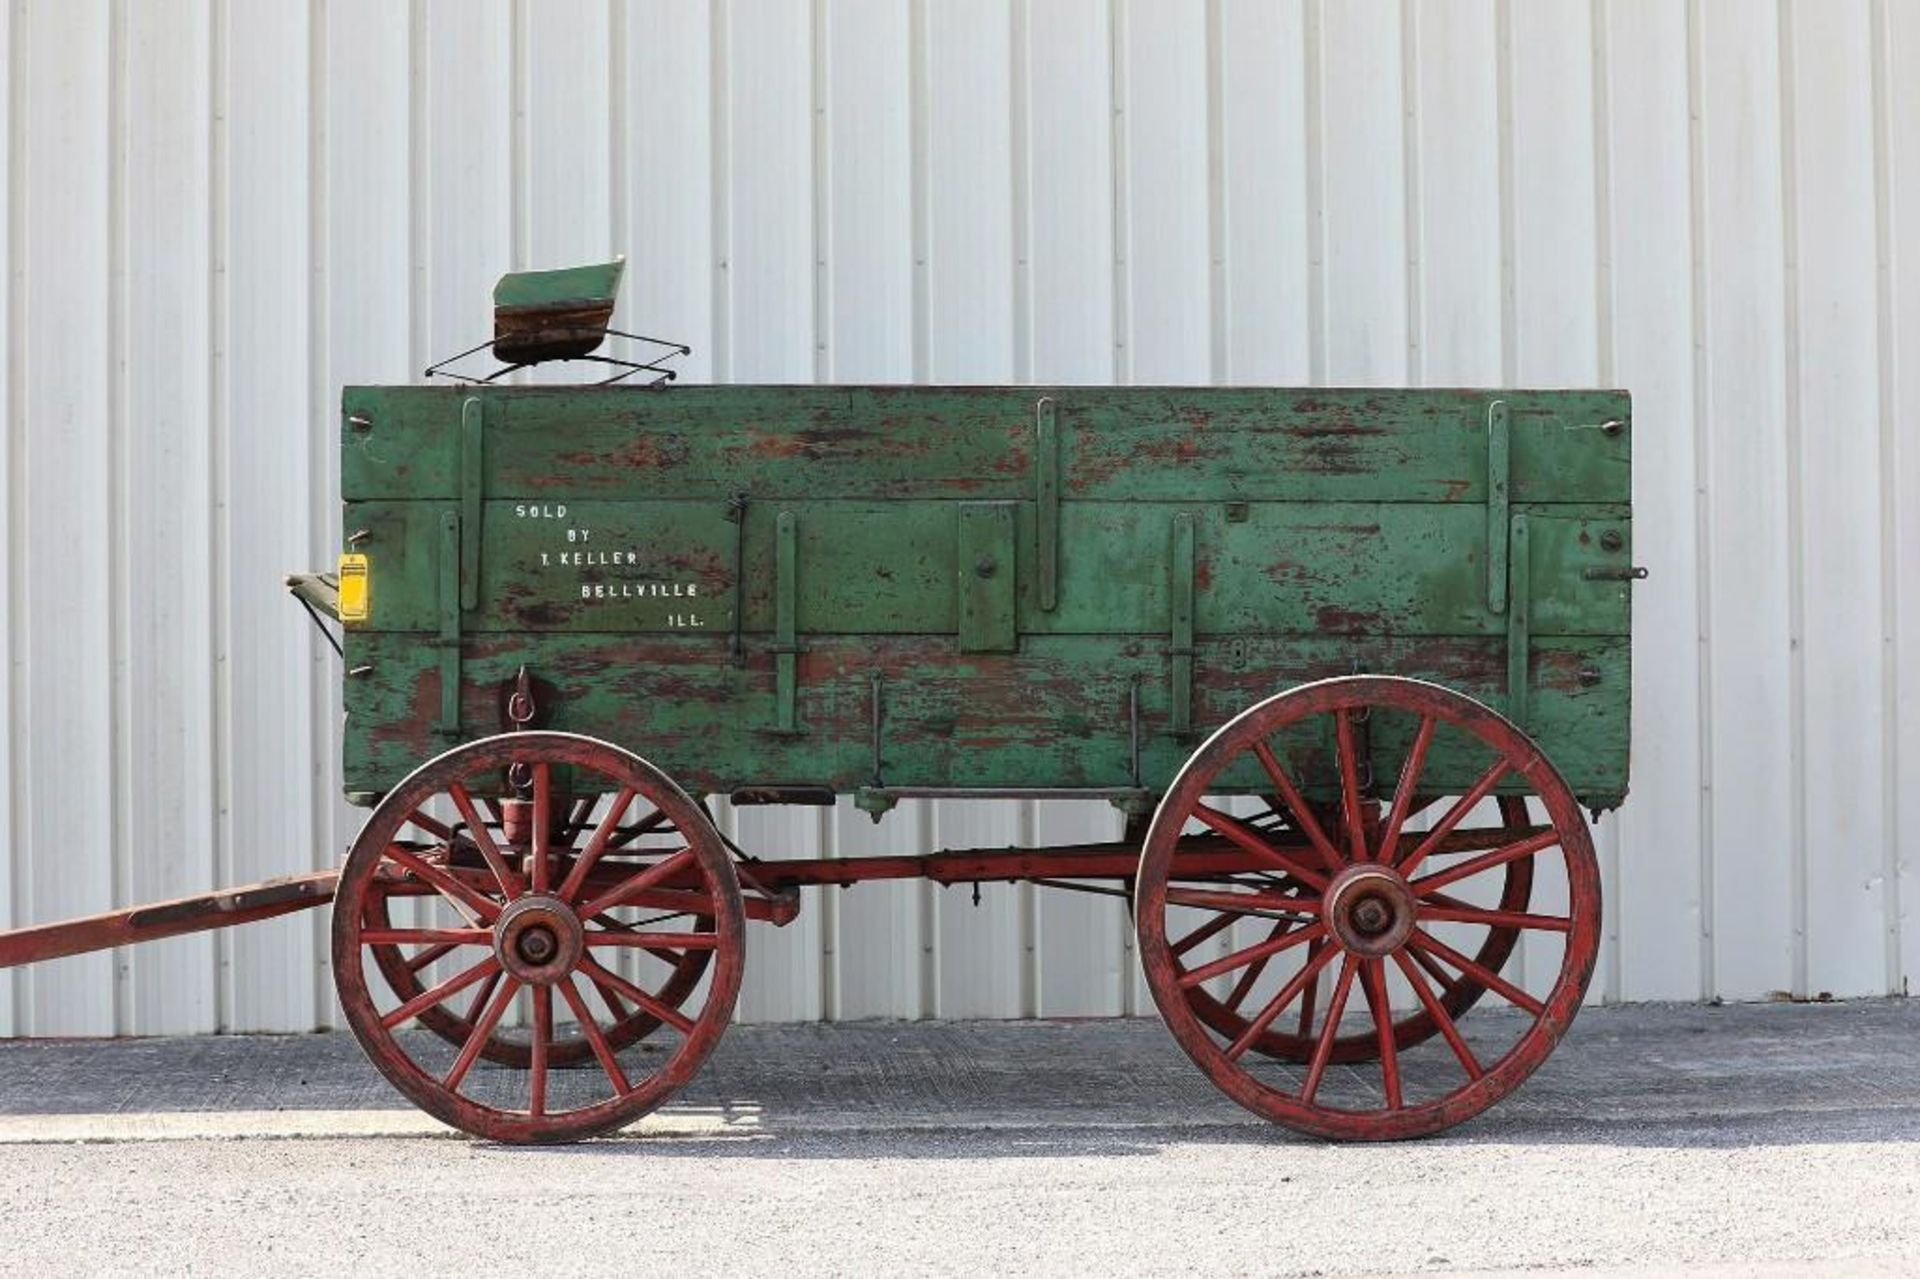 T. KELLER 3-Board Box Wagon, Manufactured in Belleville, Illinois. Seat will sell separate.